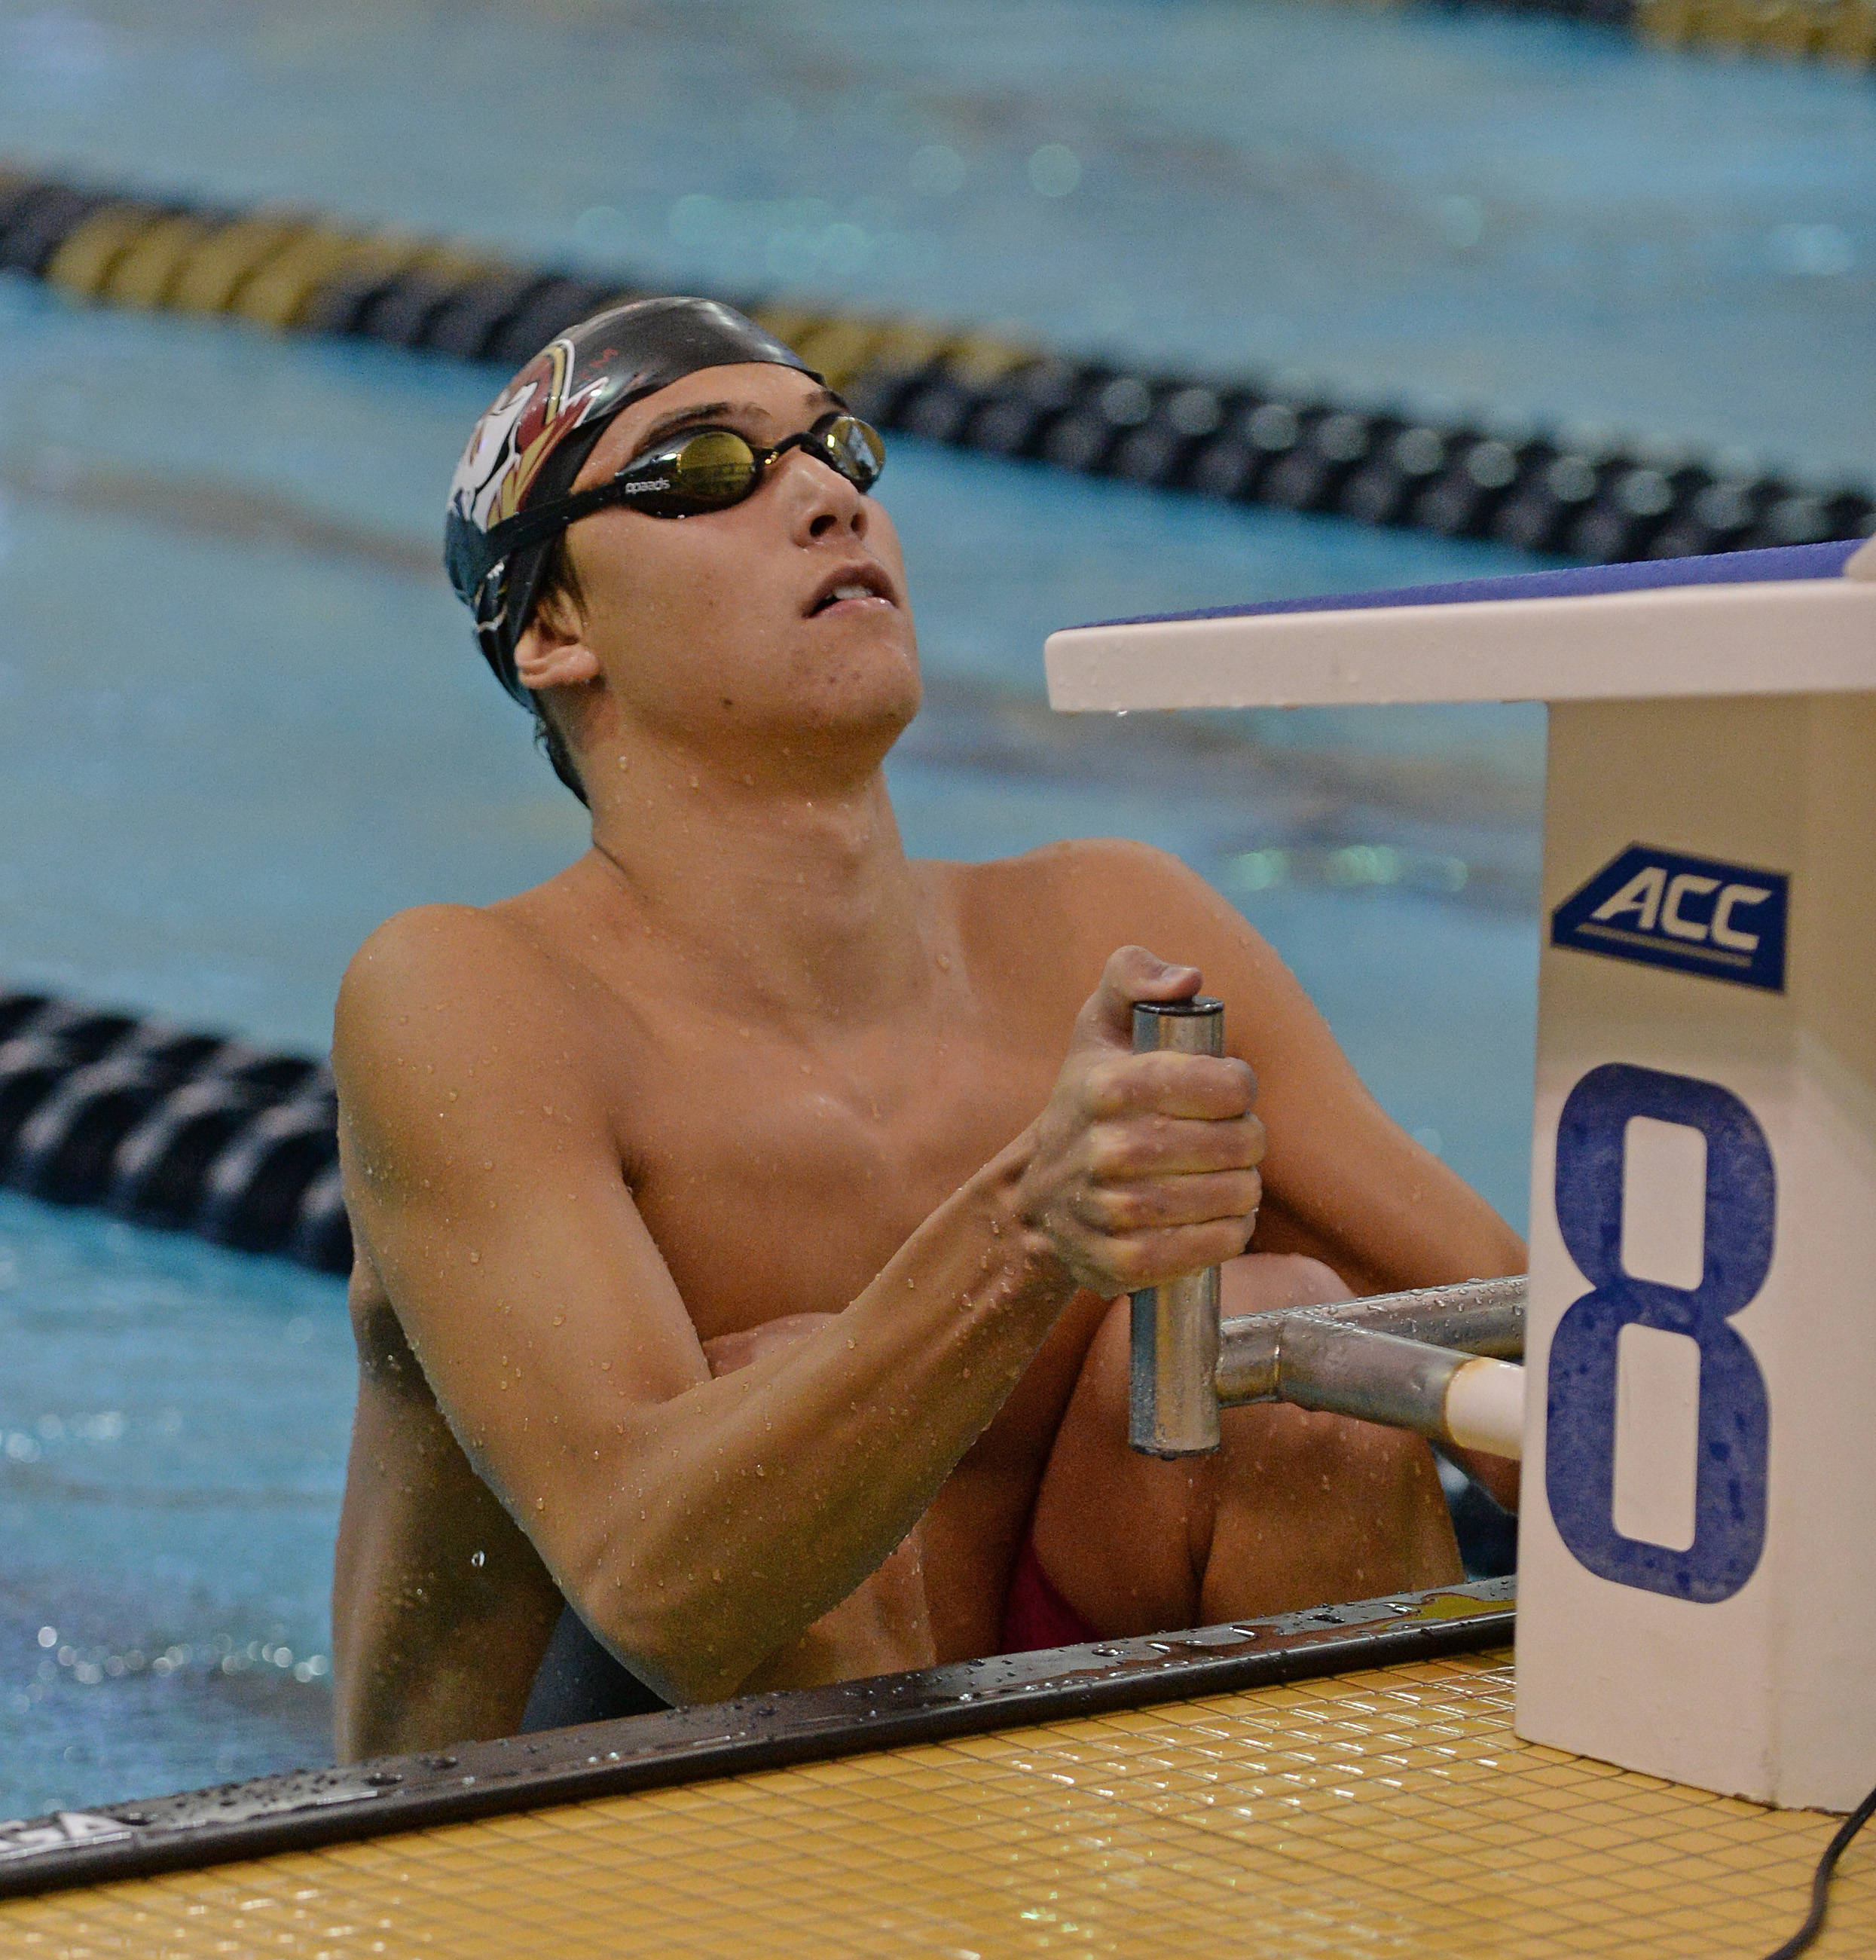 Connor Kalisz starts in finals of the 200 back - Mitch White